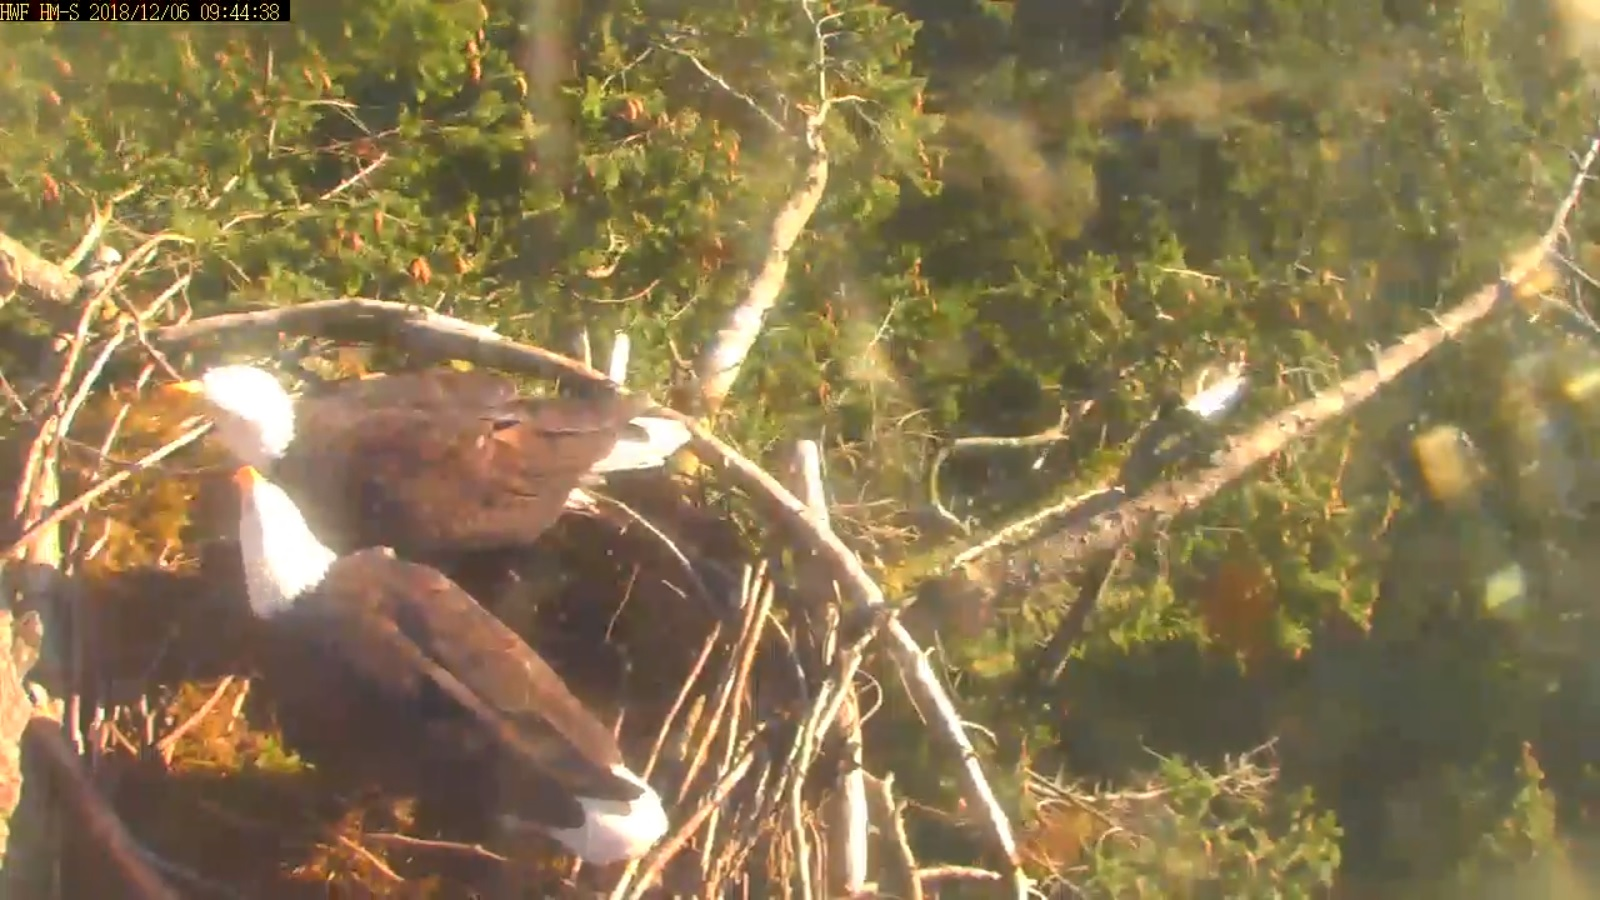 hm both moved nest material now looking around 9 44 dec 6 .jpg